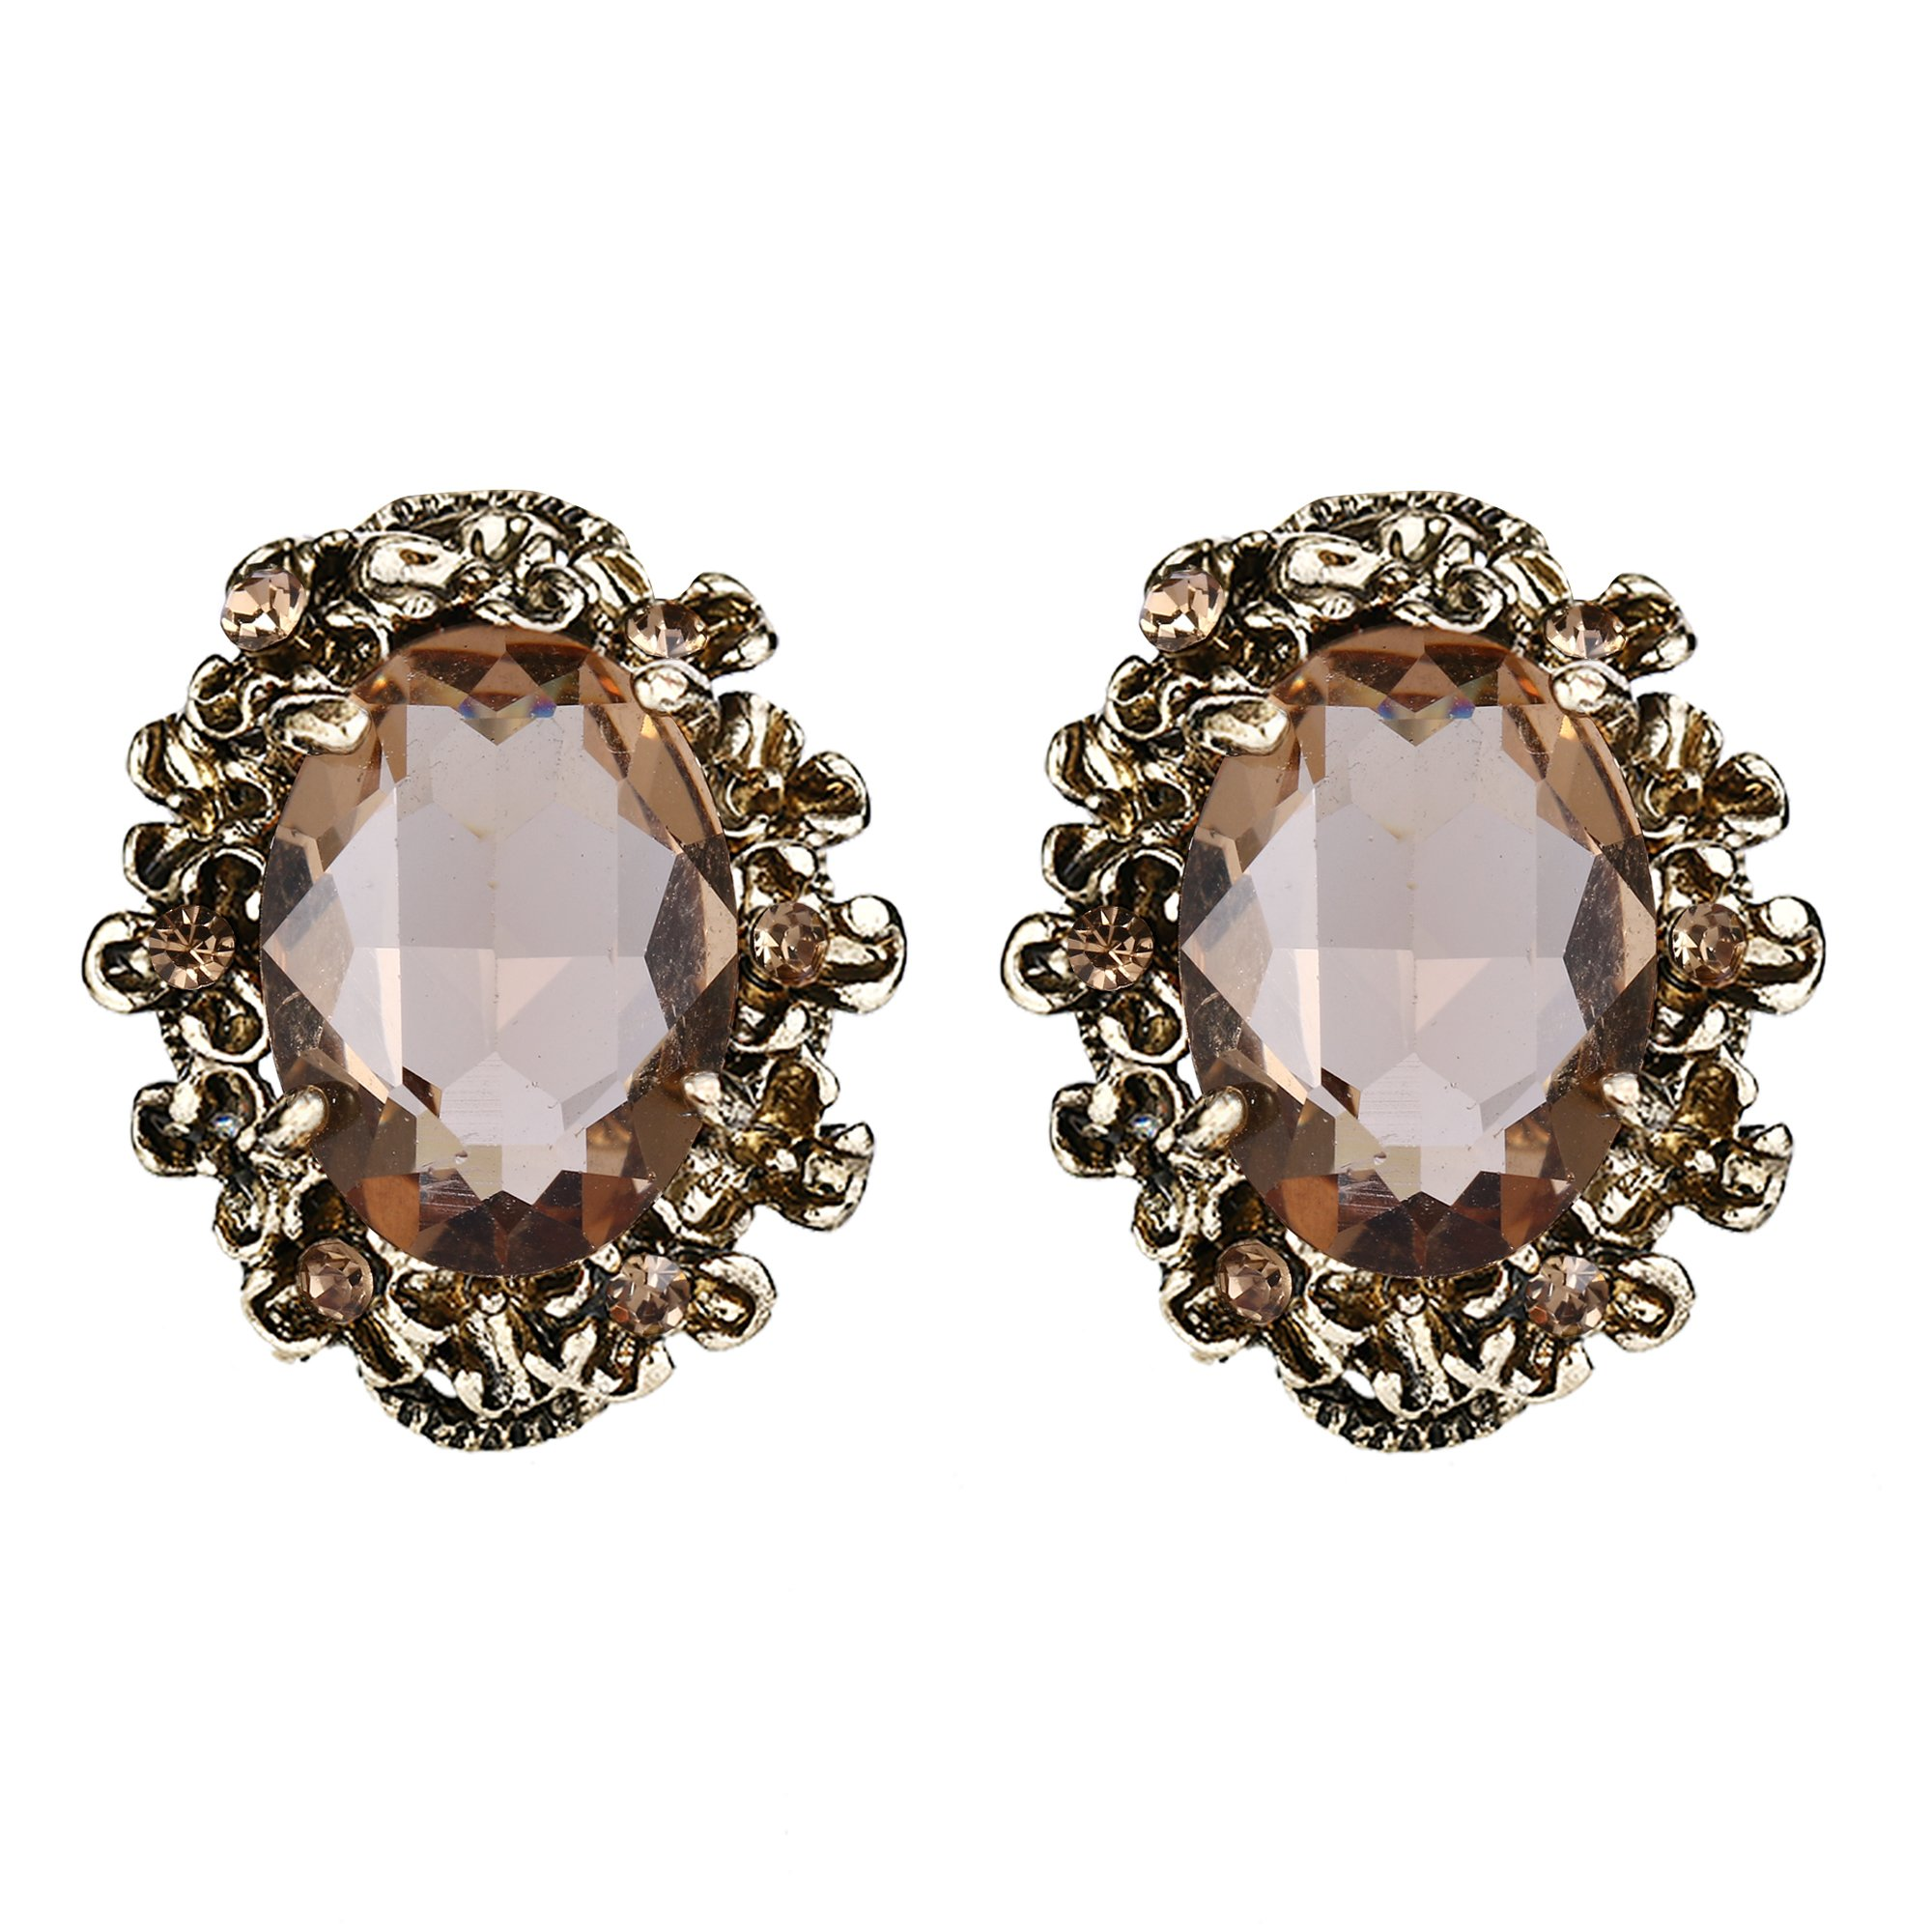 BriLove Antique-Gold-Toned Stud Earrings Women's Victorian Style Crystal Floral Scroll Cameo Inspired Oval Earrings Champagne